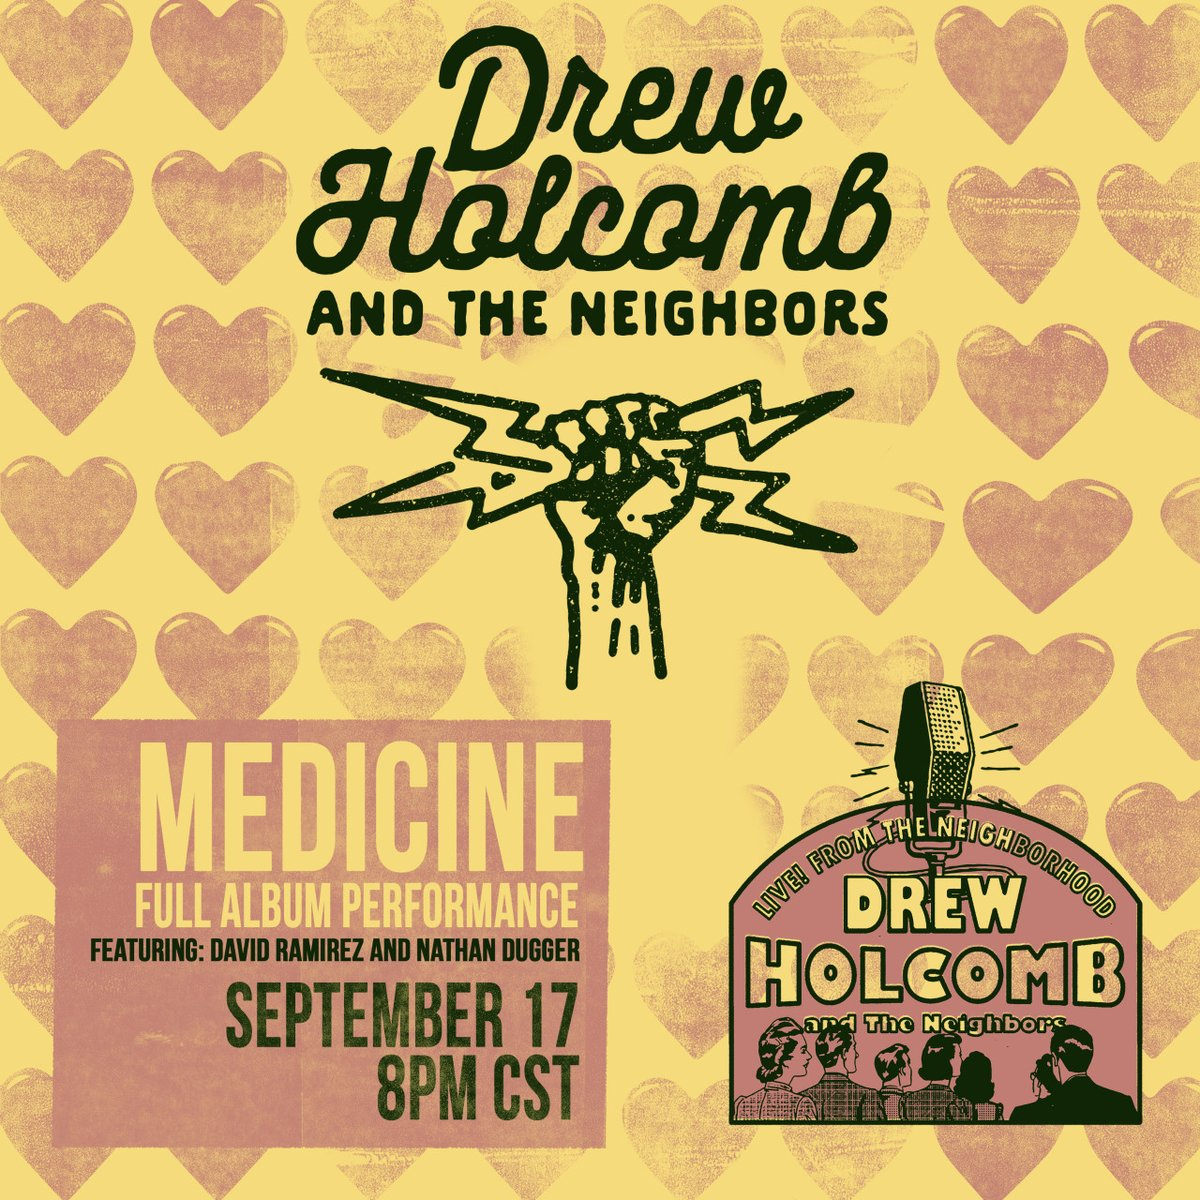 Hi folks! While we're bummed we won't be together this year, here's some much needed good news. Drew will be presenting a series of live streams this fall and we want you to join us. Make sure you're signed up for the e-list, and we may have special treat for you this afternoon!